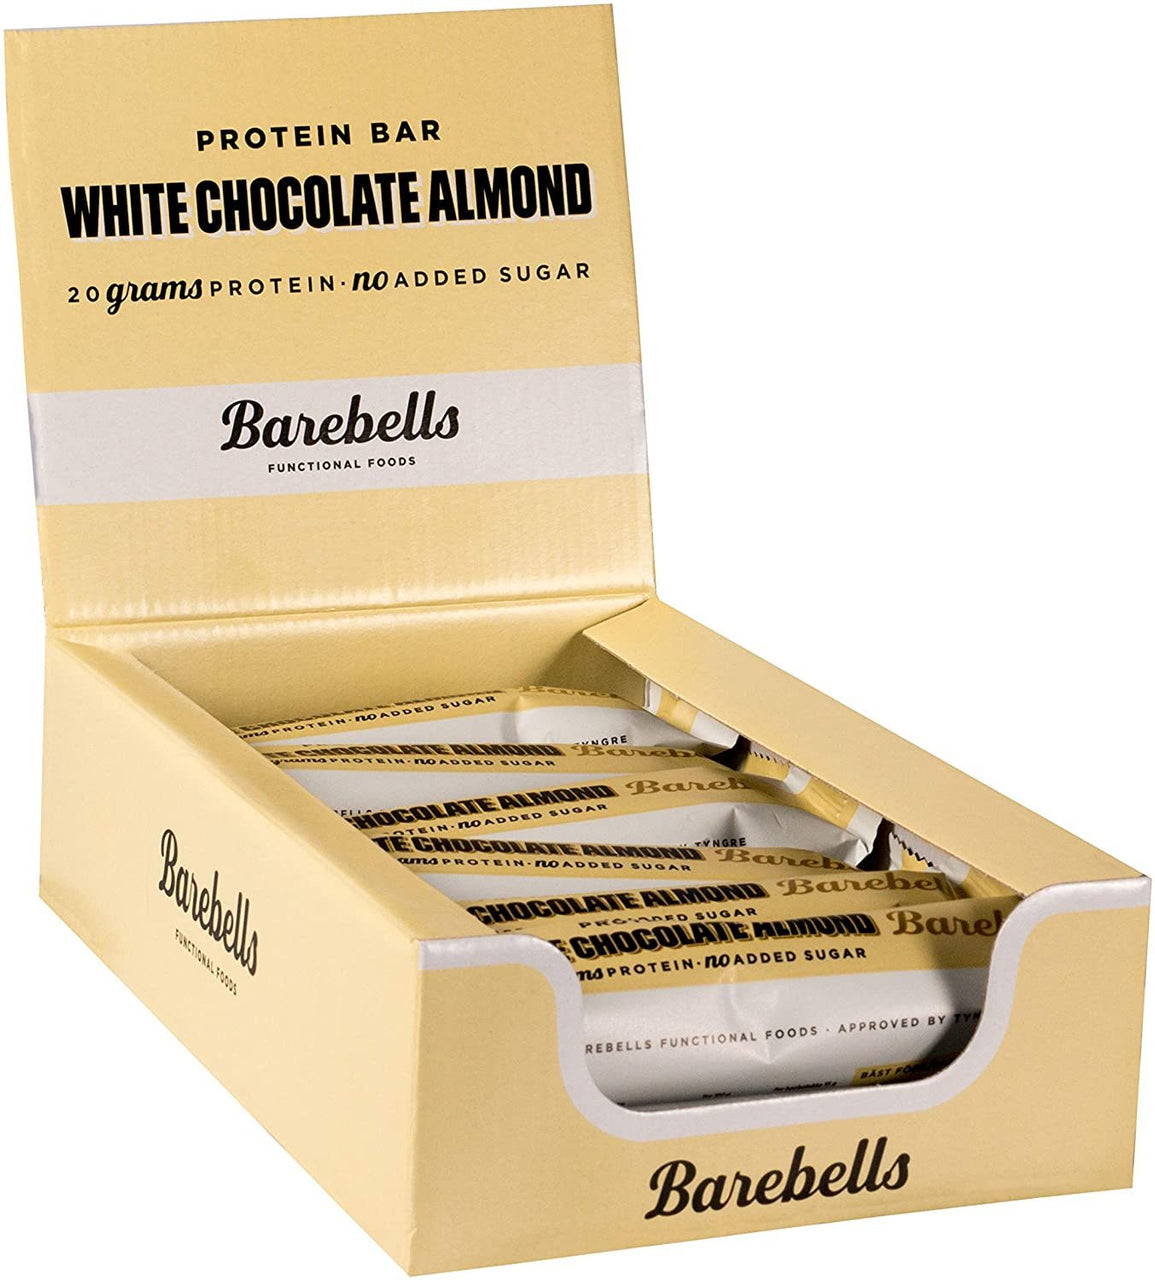 Barebells Protein Bar 55g x 12 bars (White Chocolate Almond), Protein Bar, Barebells, ASH Asia